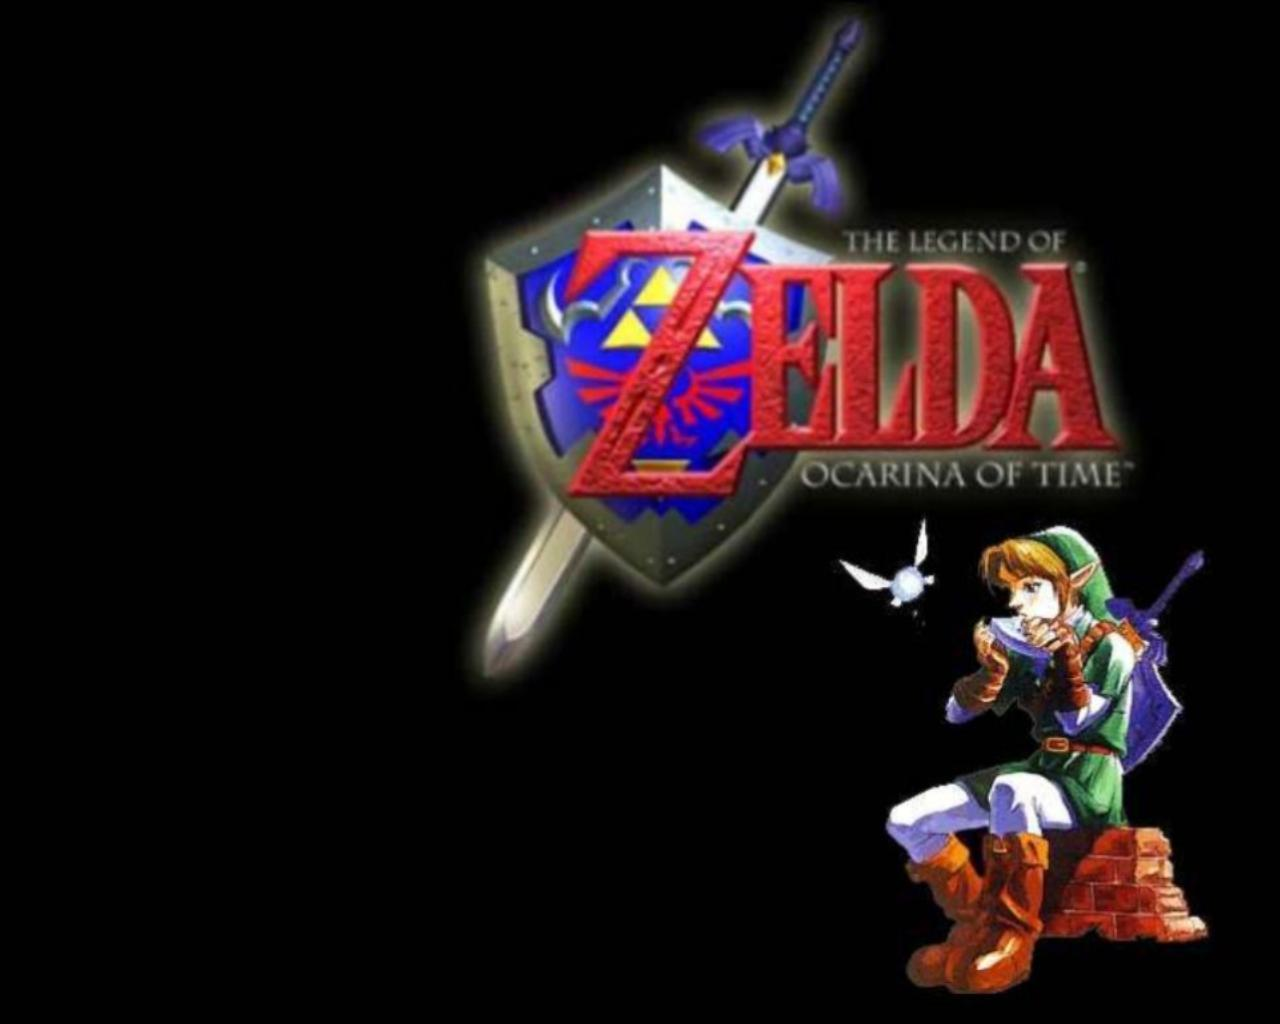 Most Viewed The Legend Of Zelda Ocarina Of Time Wallpapers 4k